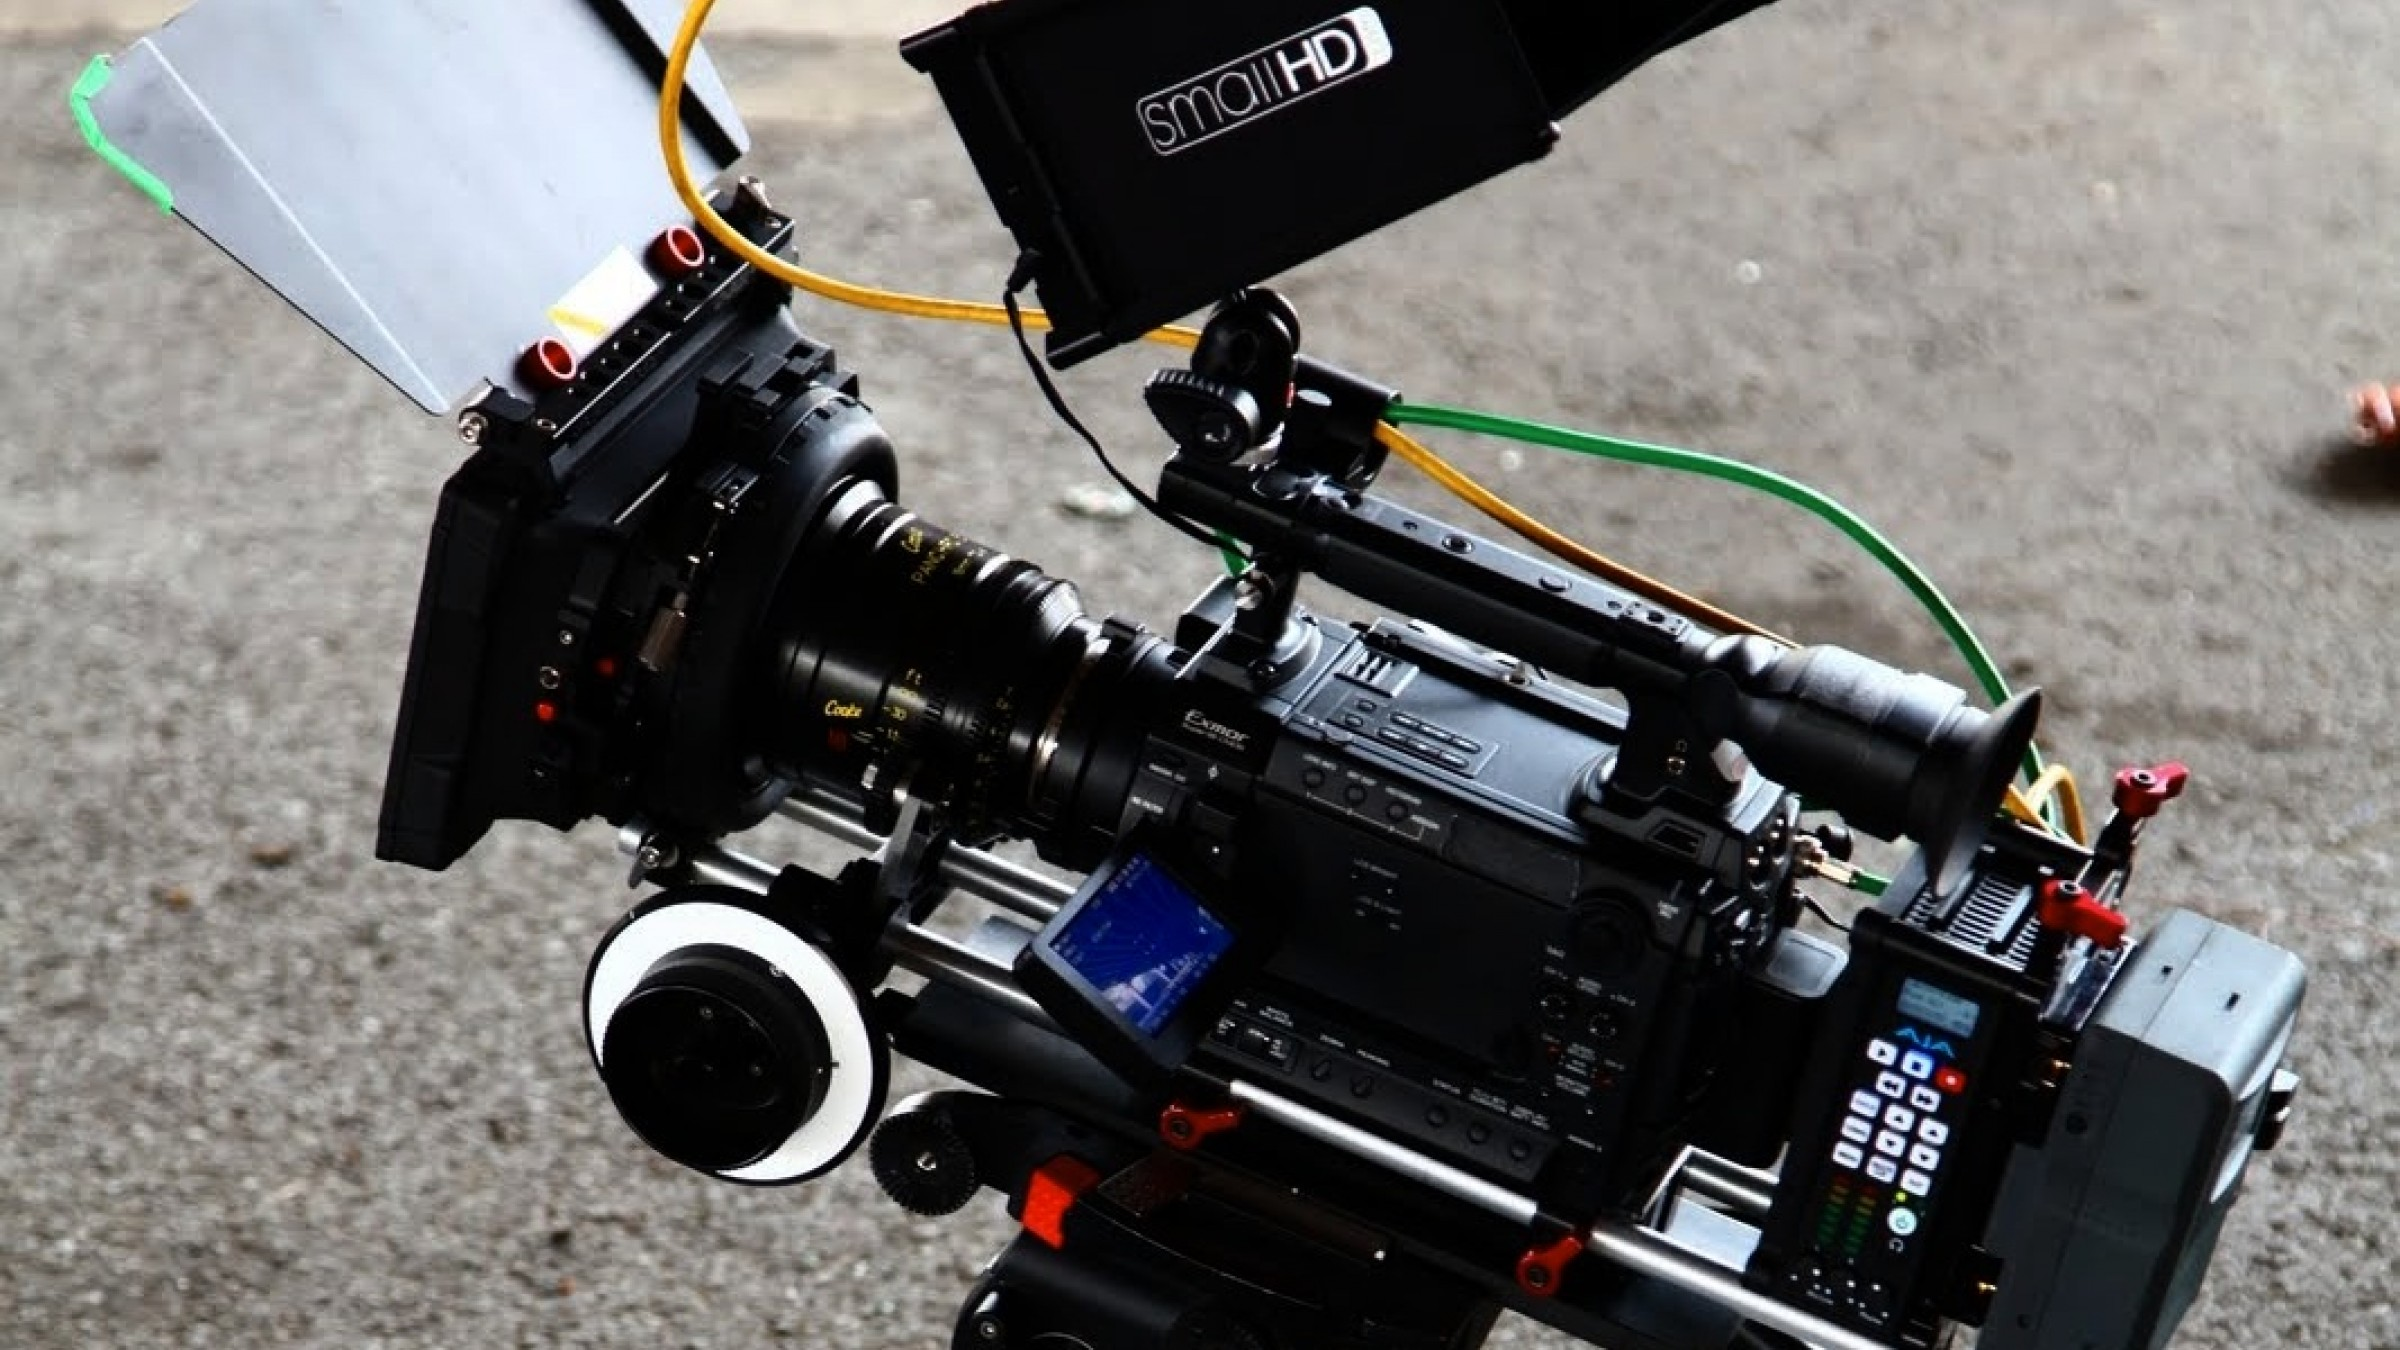 More Tests Reveal Sony F3 to be an Entirely Different Camera